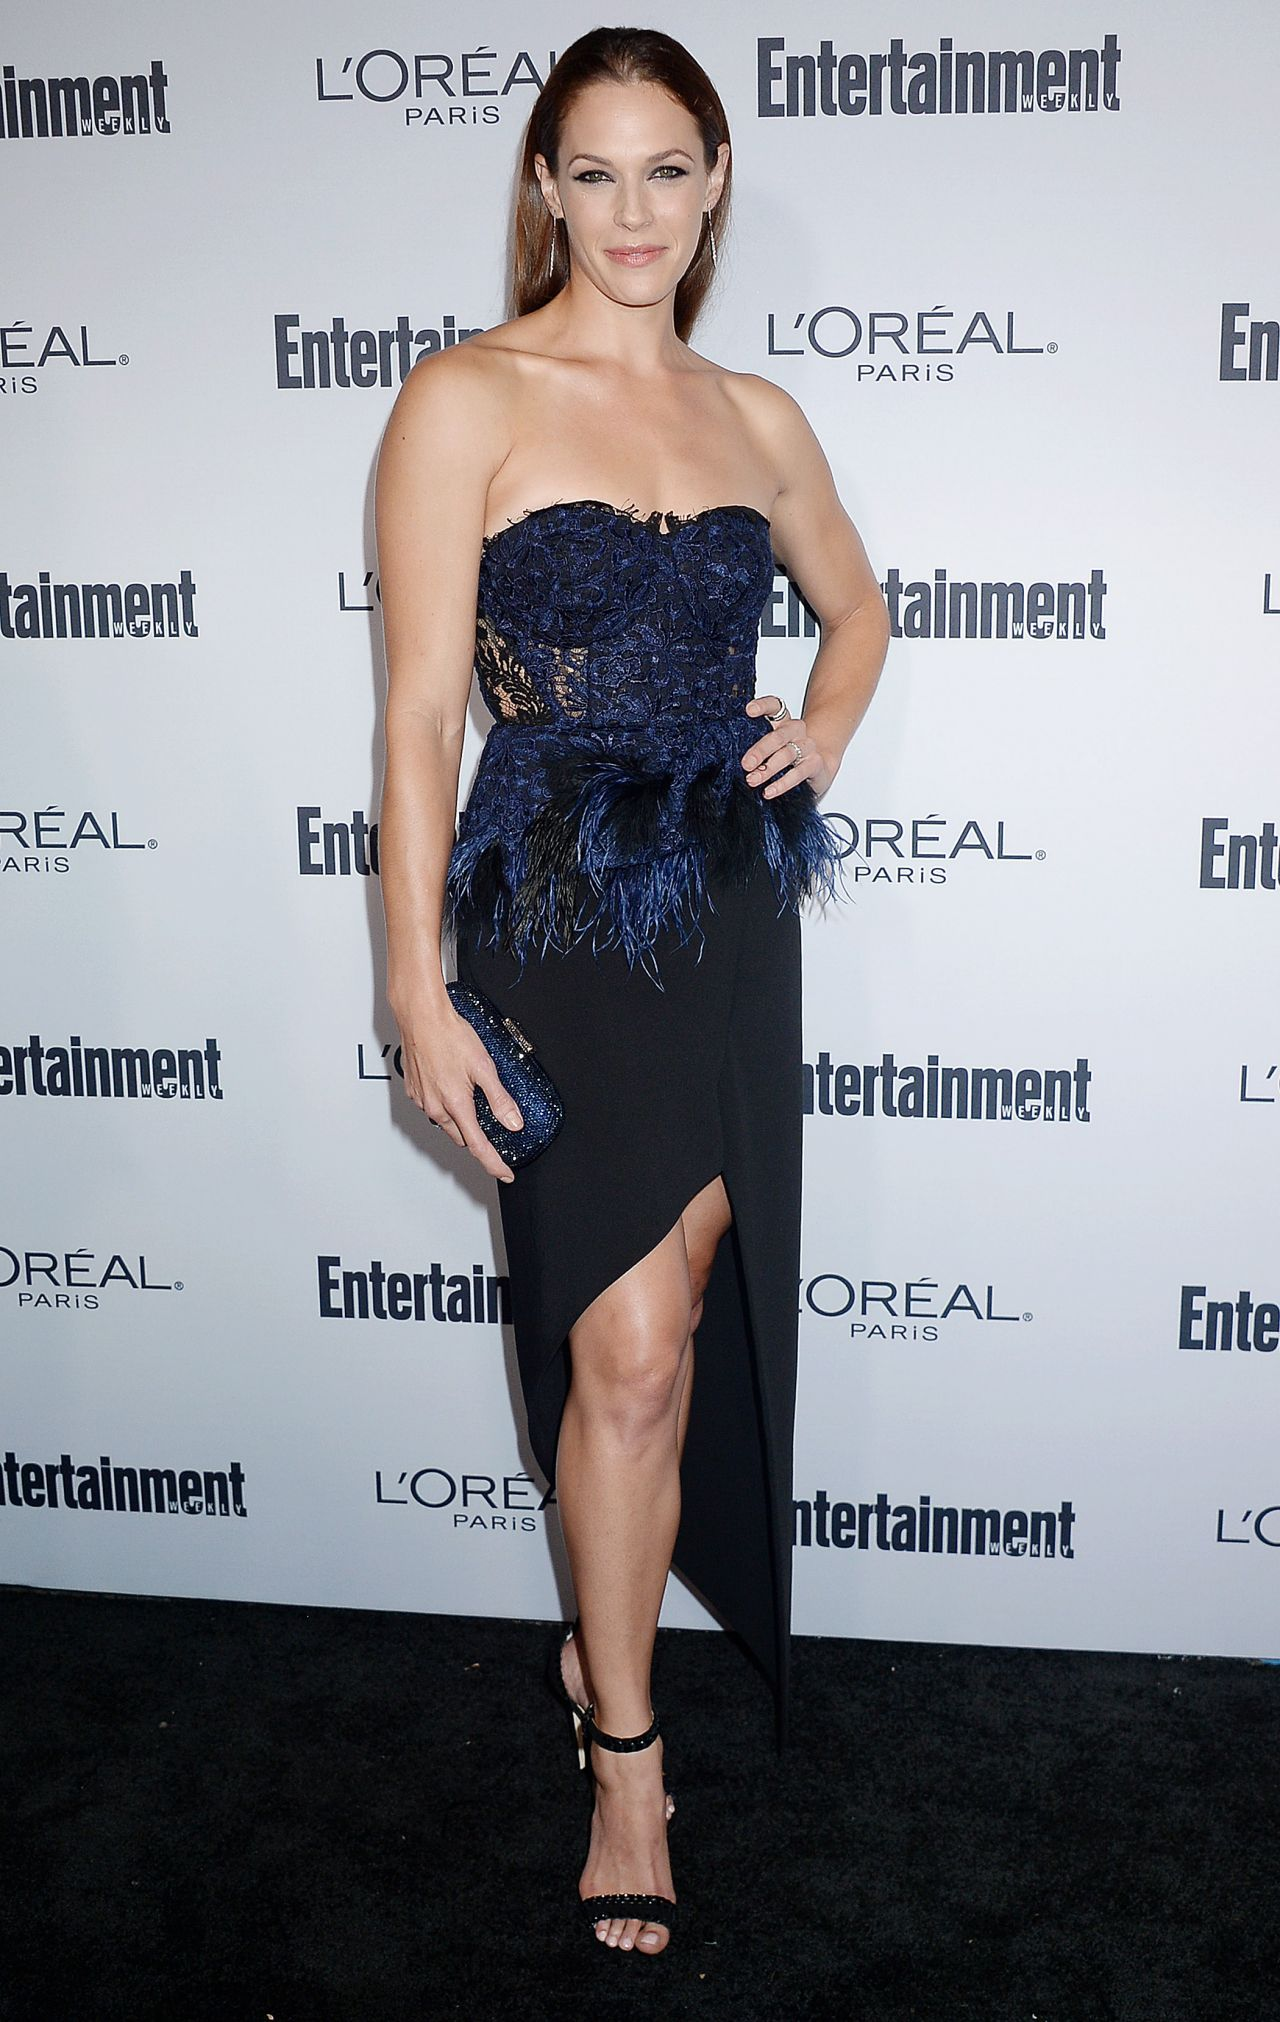 http://celebmafia.com/wp-content/uploads/2016/09/amanda-righetti-ew-hosts-2016-pre-emmy-party-in-los-angeles-9-16-2016-4.jpg